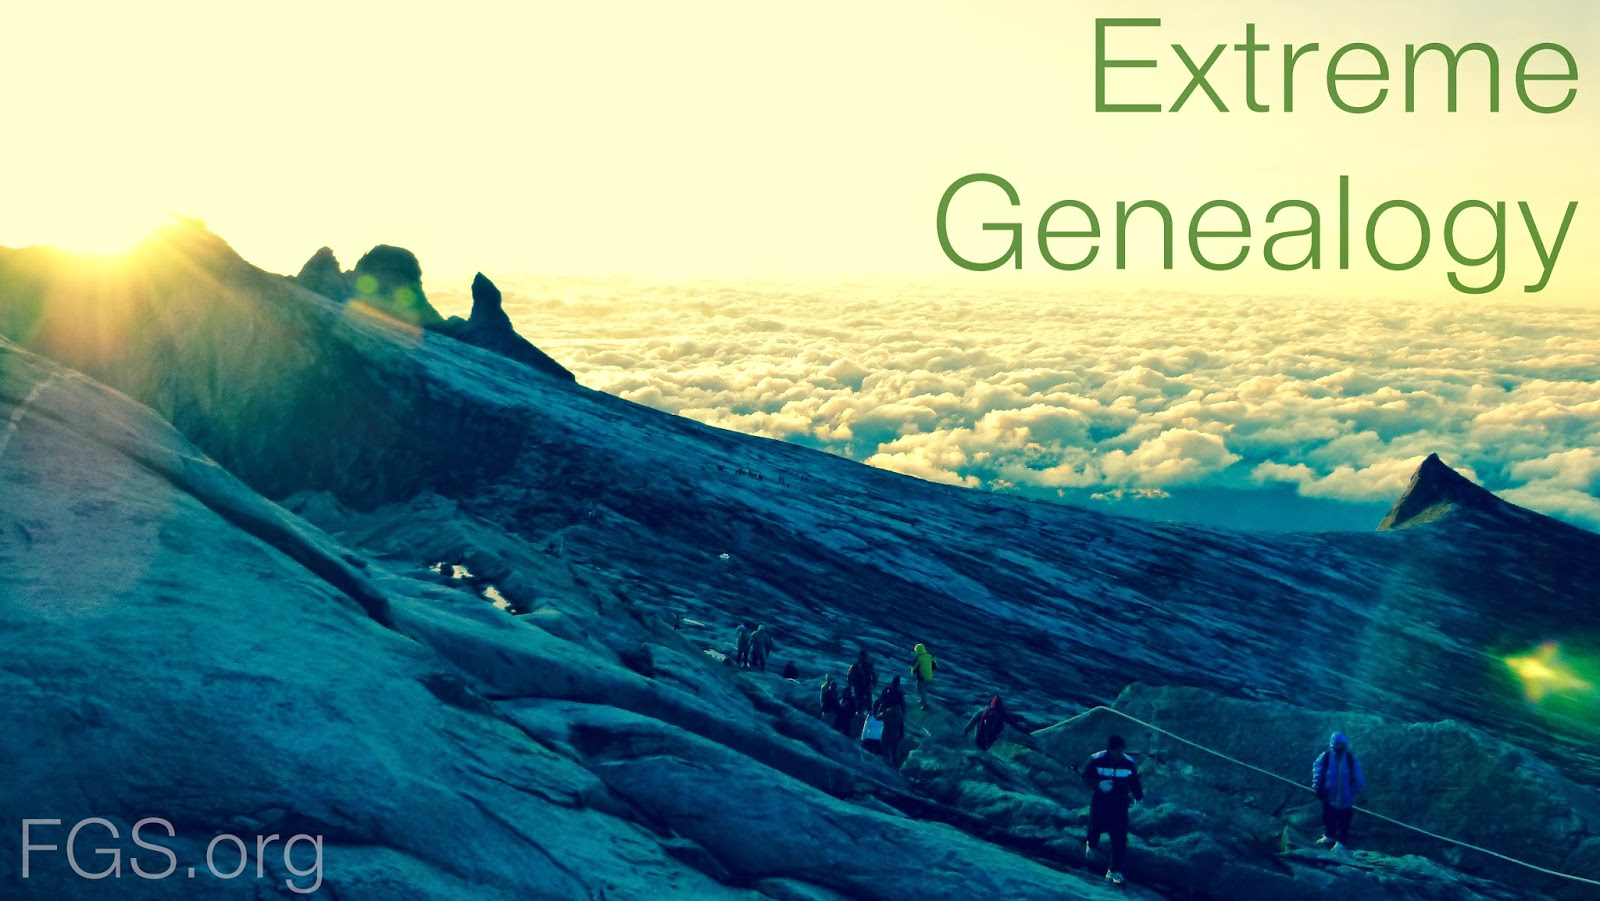 Extreme Genealogy (Or Why You Should Belong To At Least One Genealogy Society) via FGS.org #genealogy #GenSocs #familyhistory